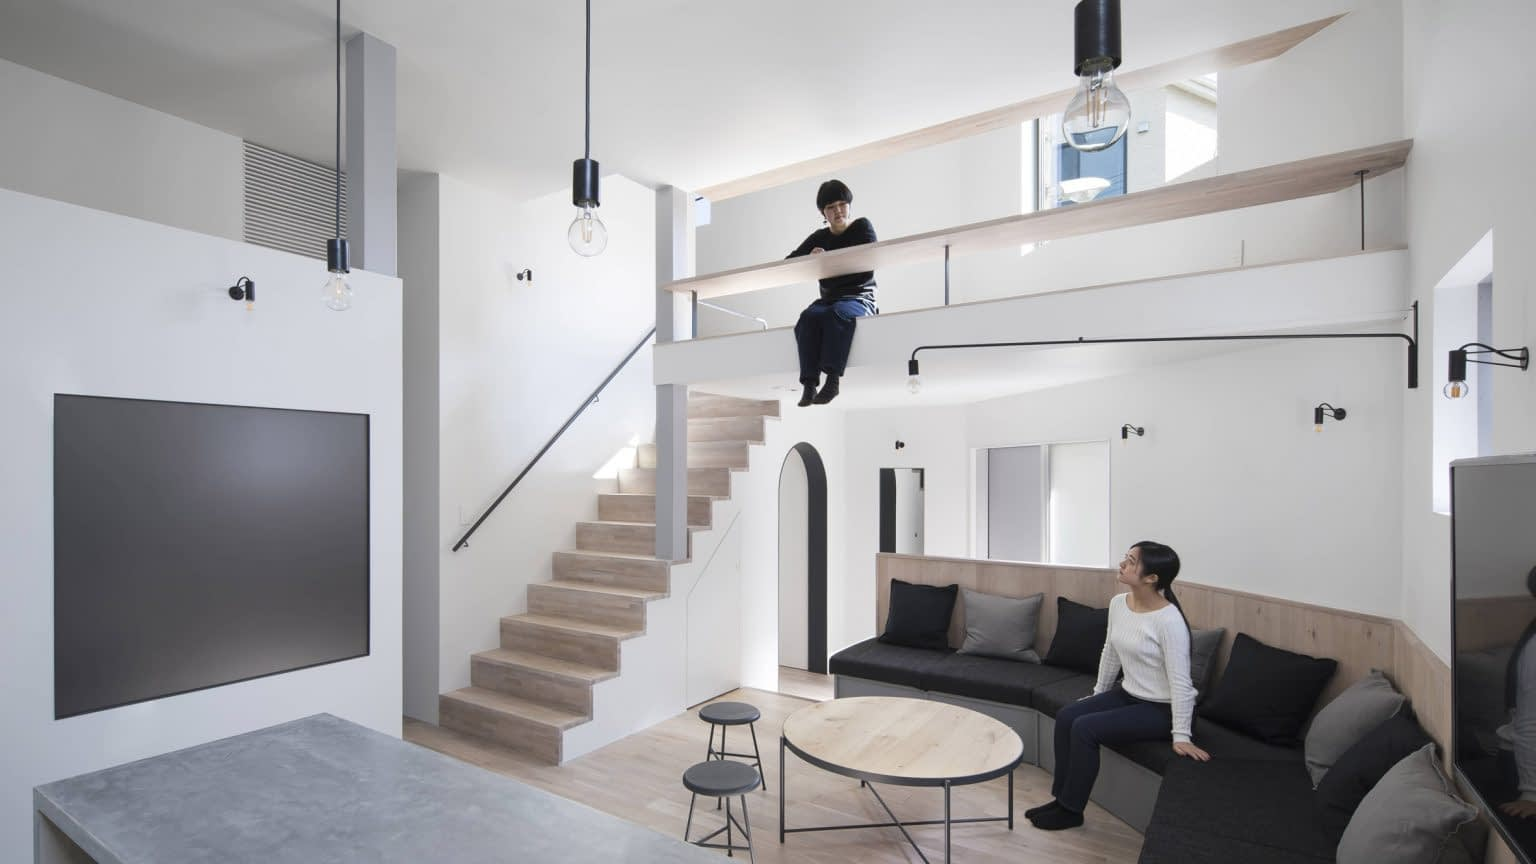 Small Co Living House with Japanese Architecture for Optimal Efficiency